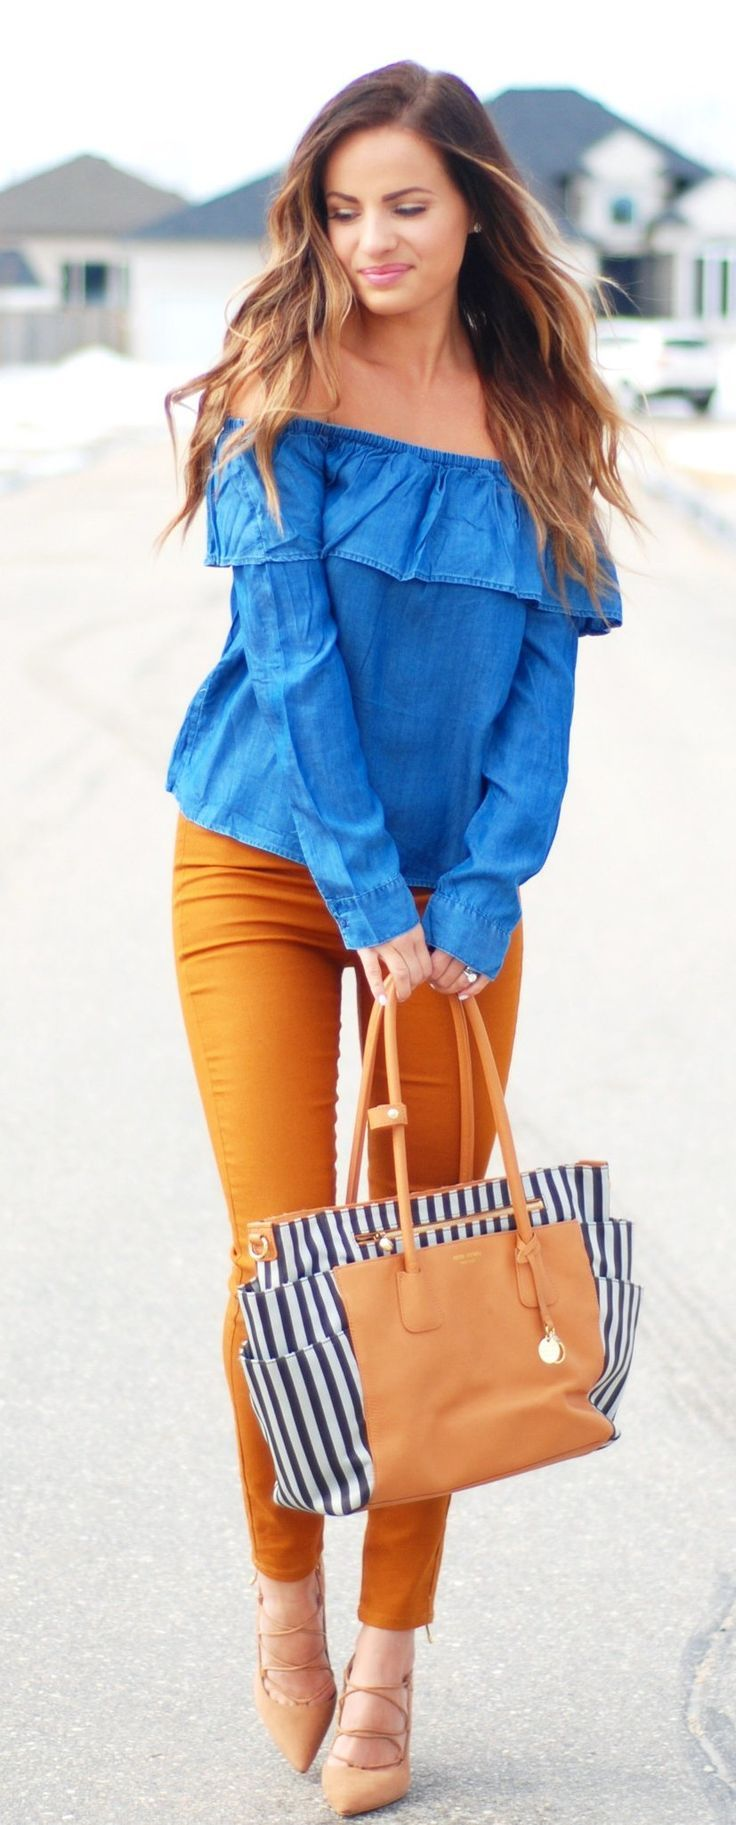 Blue Off The Shoulder Top & Camel Skinny Jeans & Striped Tote Bag